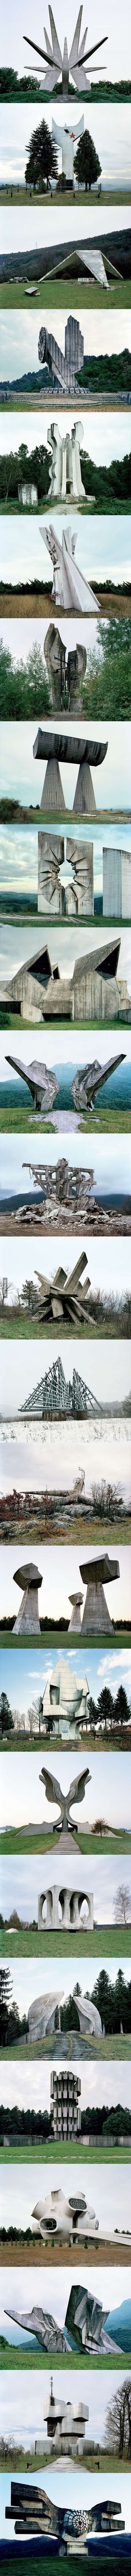 Yugoslavian abandoned monuments that look like they're from the future.